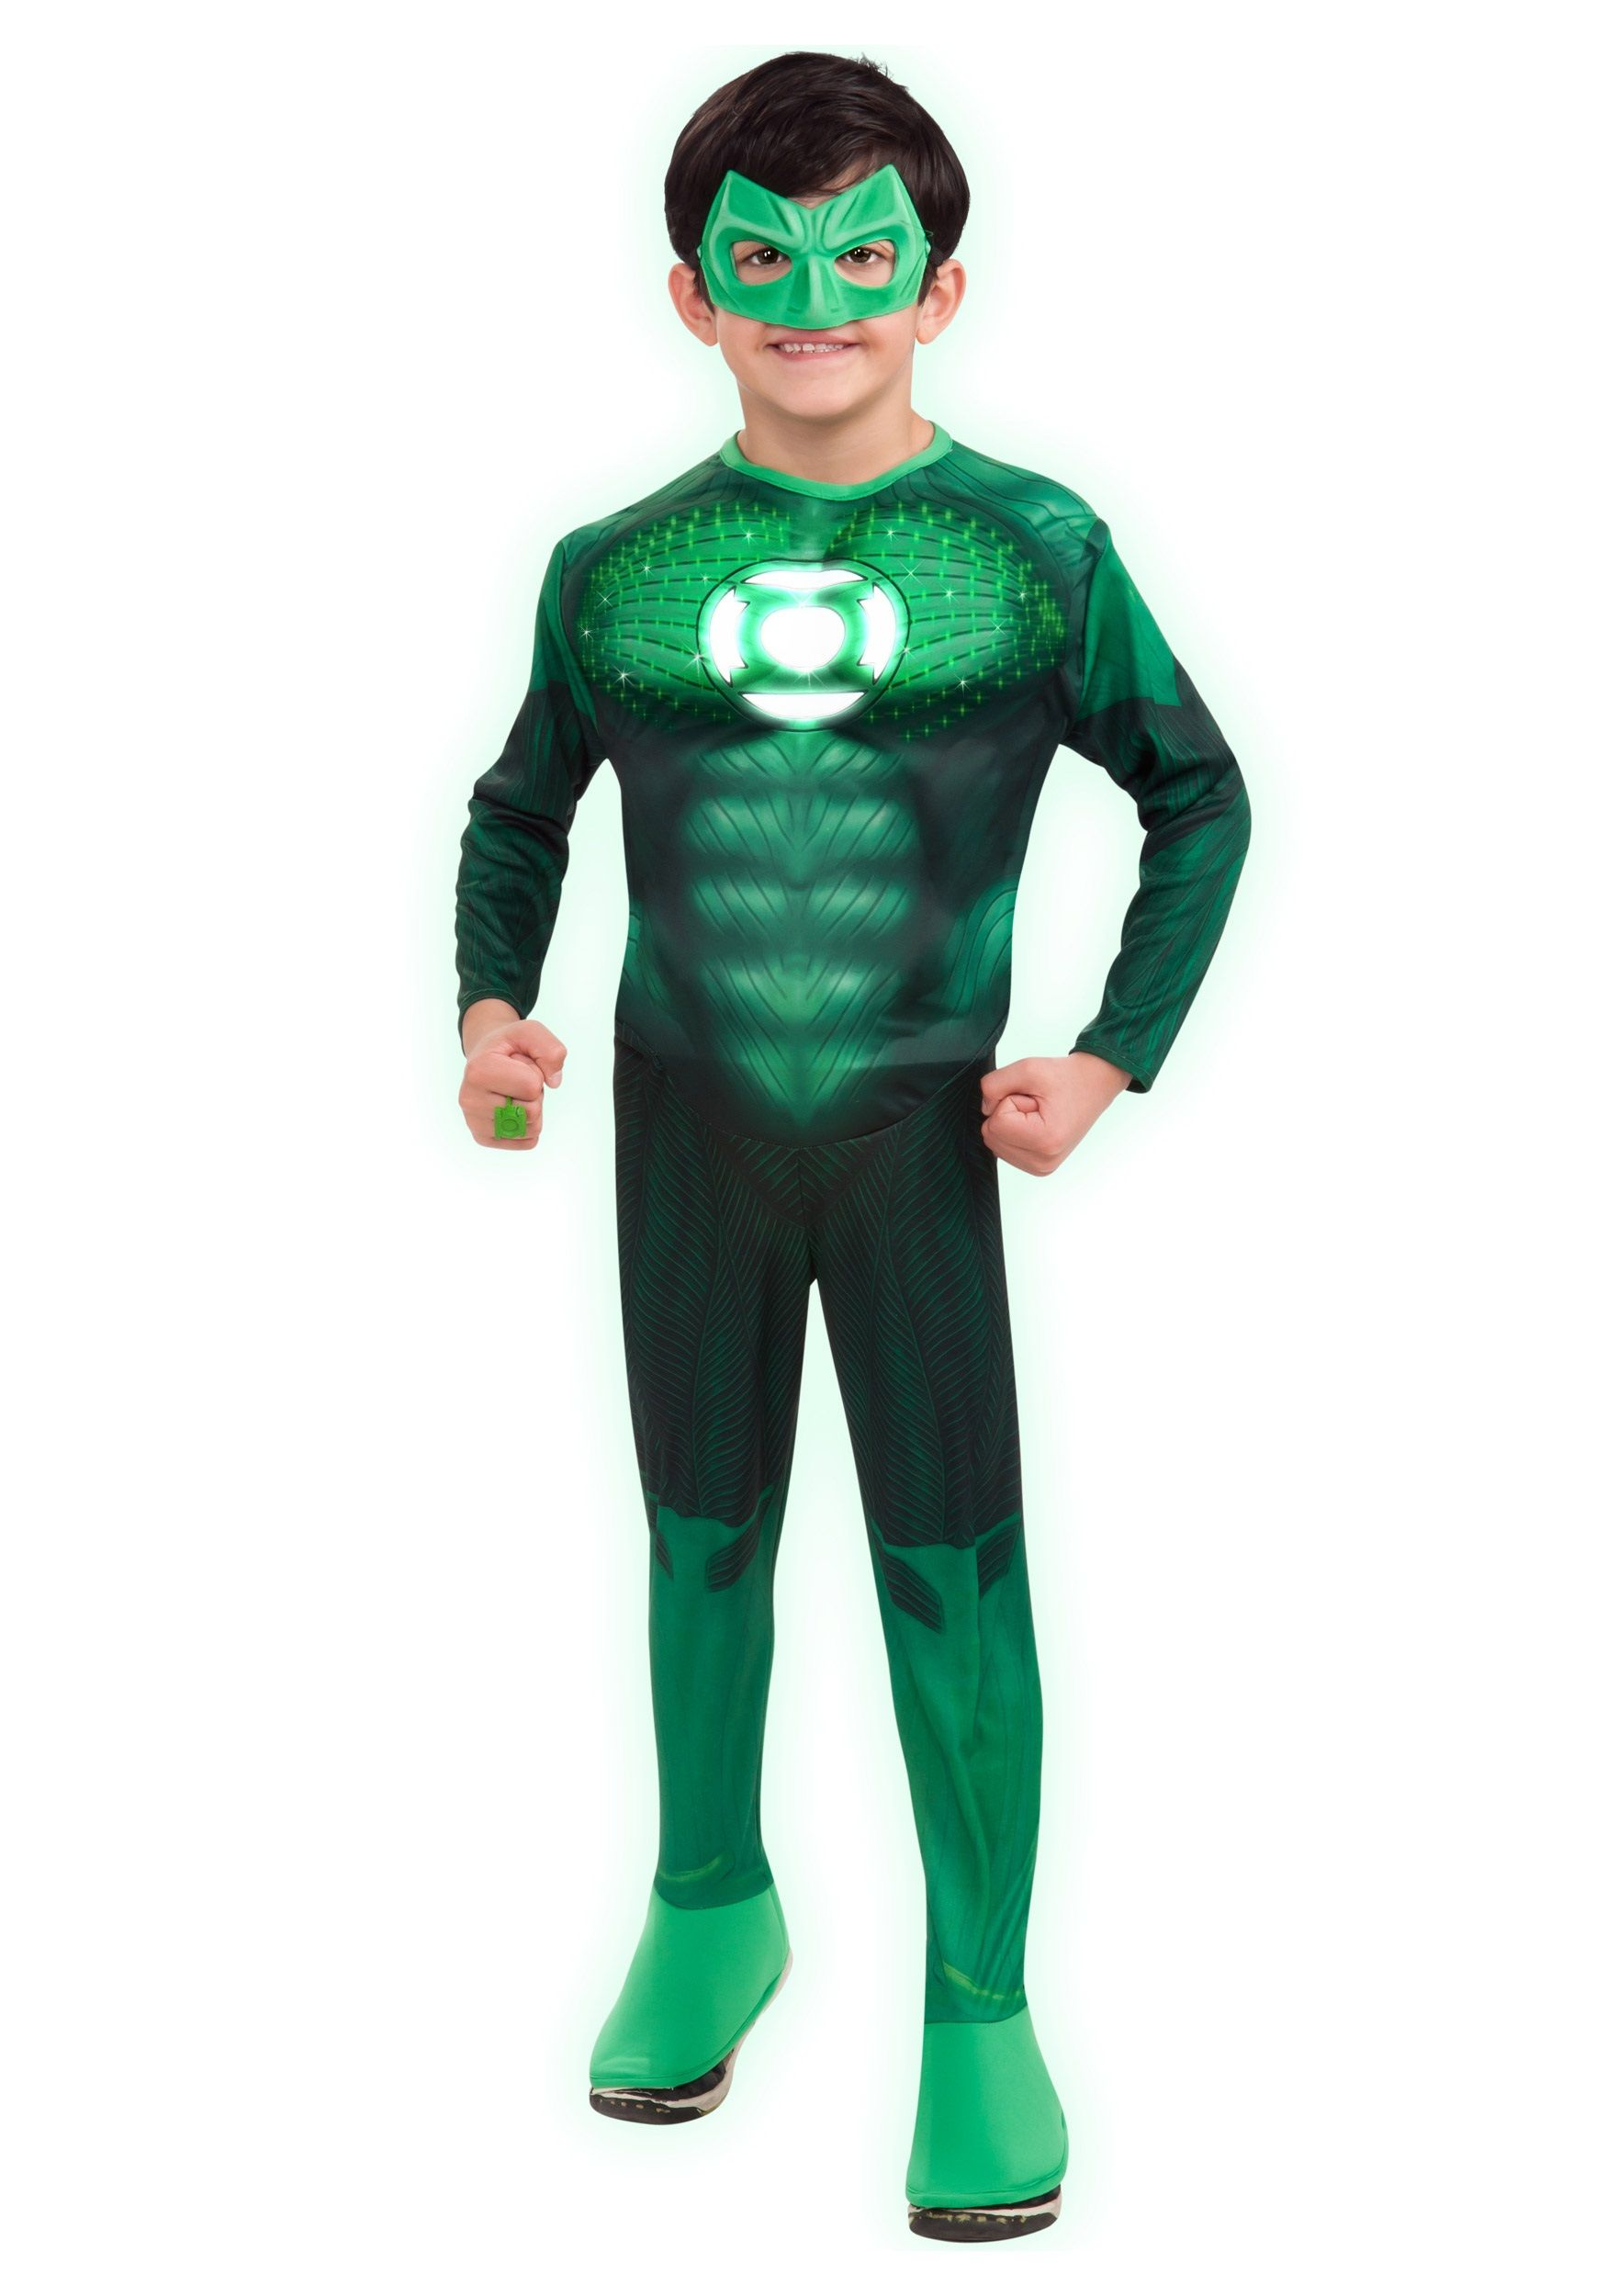 Kids Light-Up Green Lantern Costume | Green lantern costume